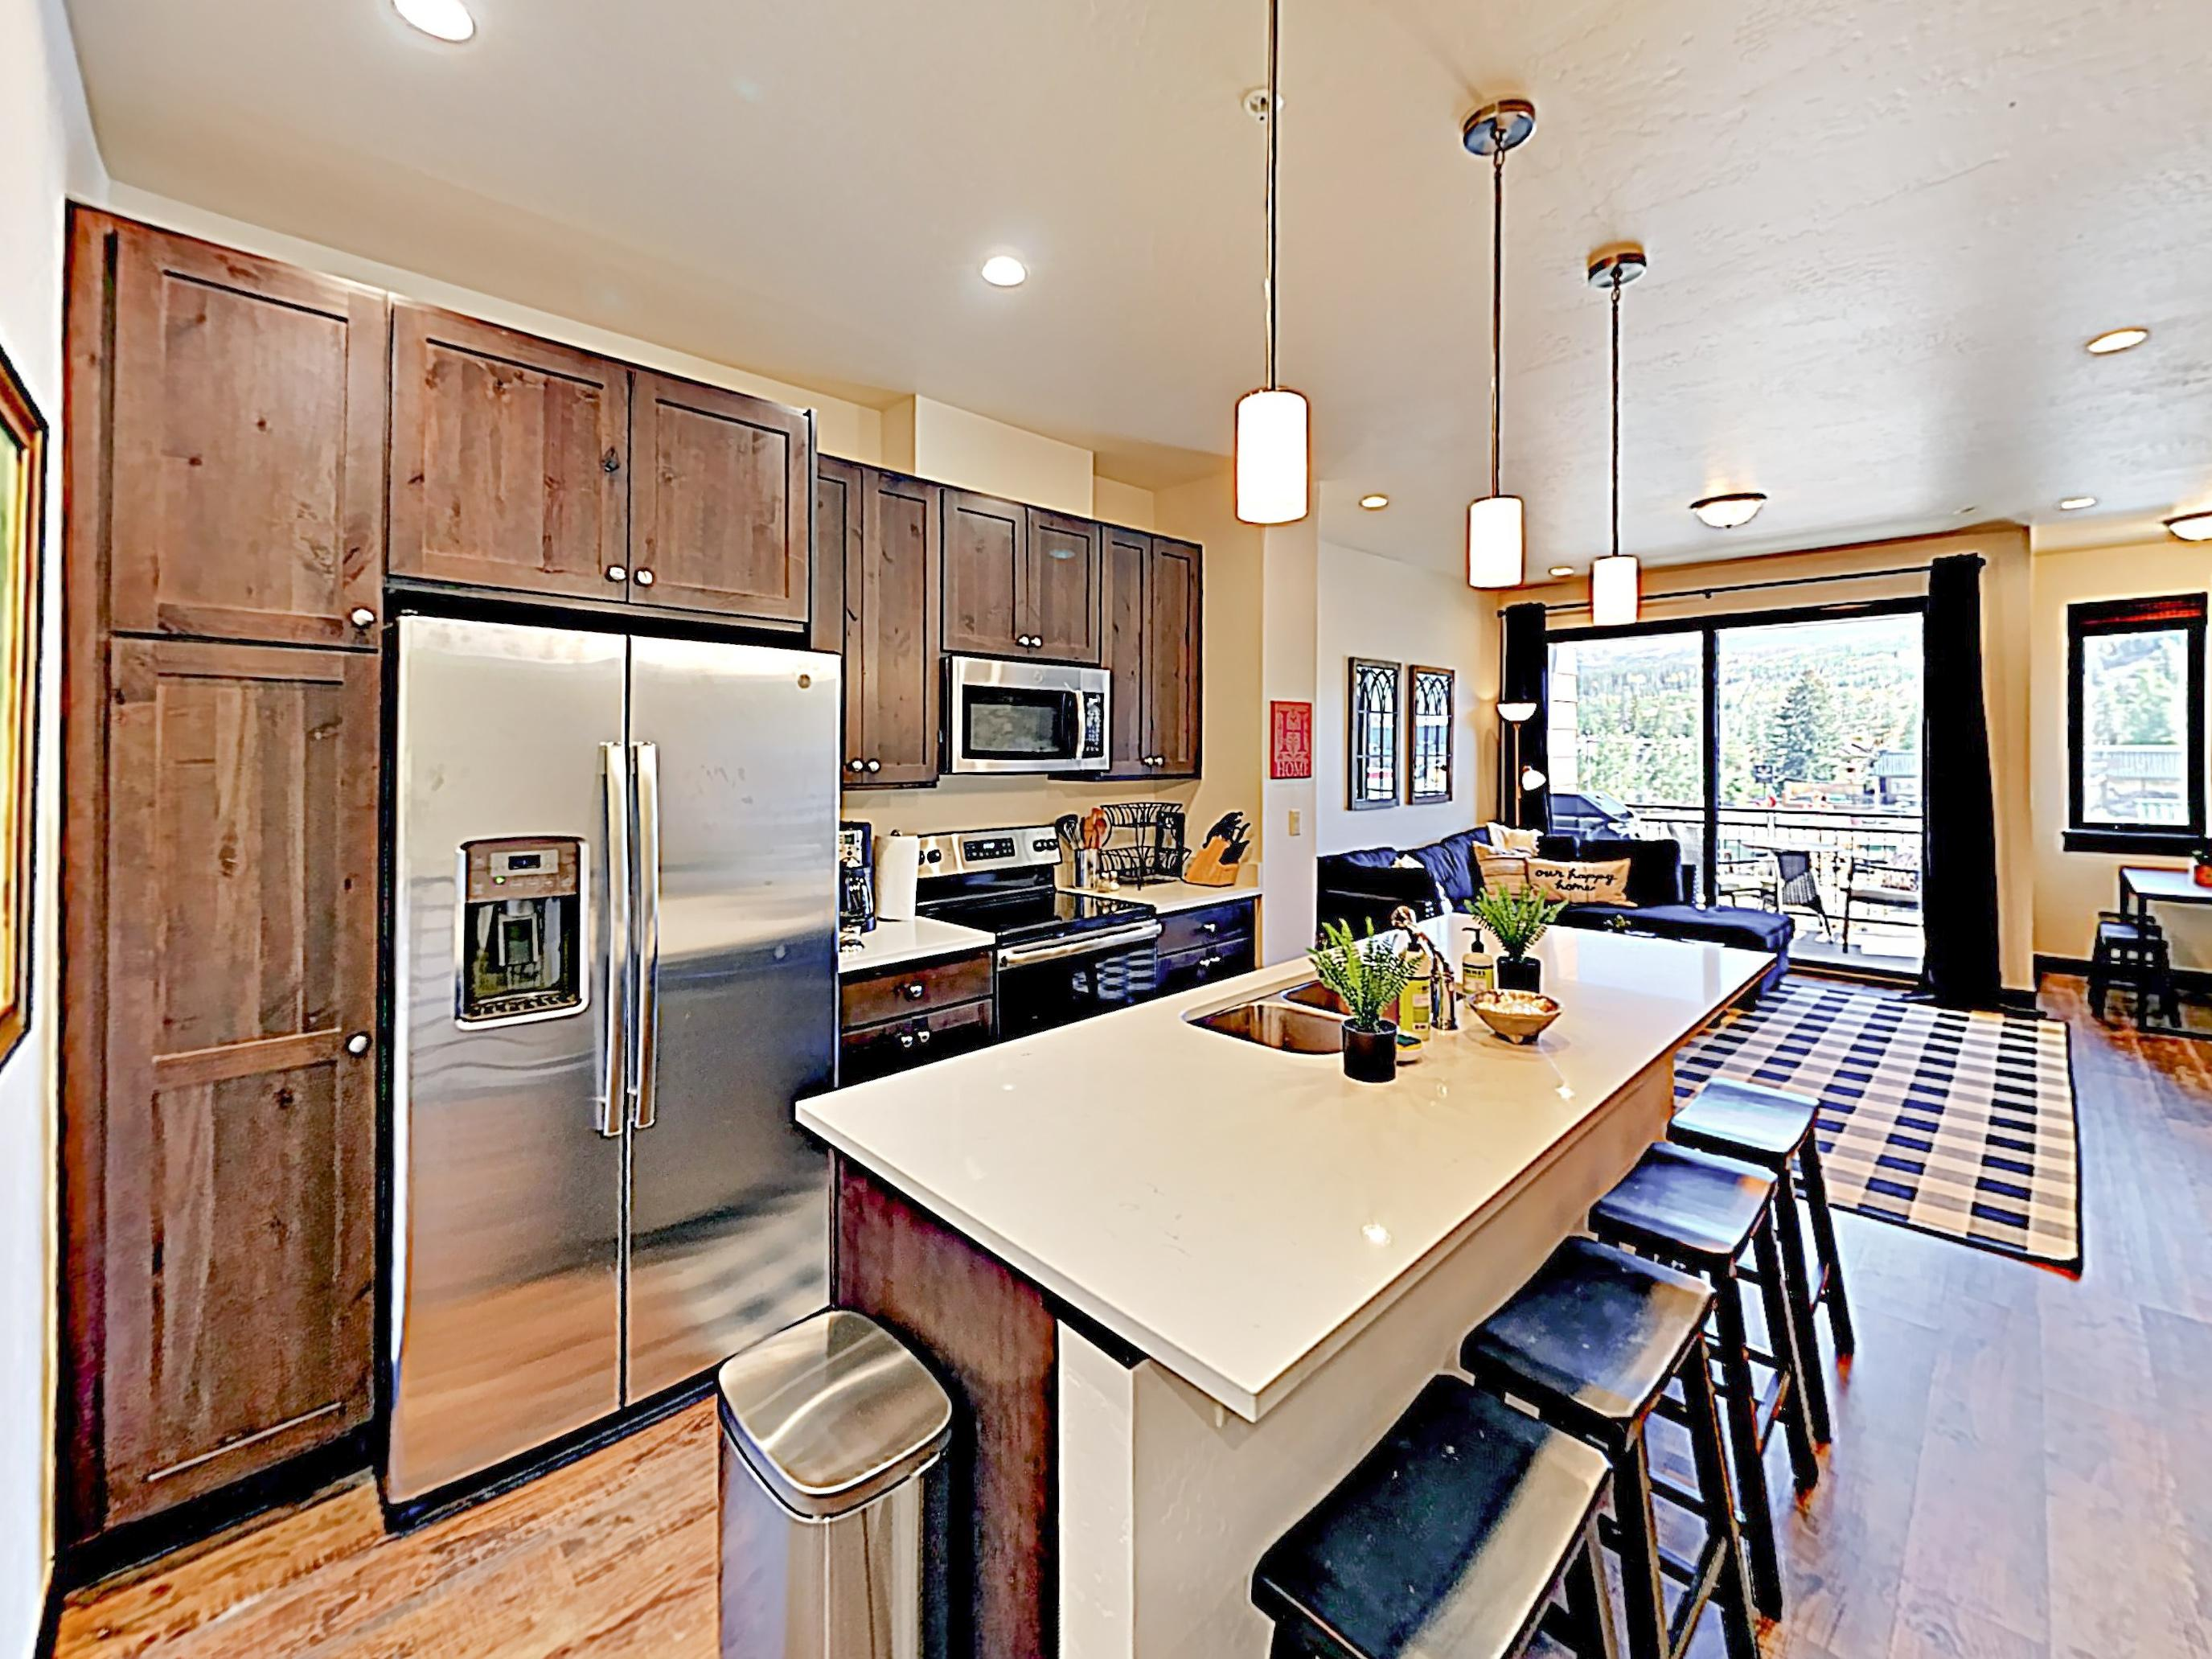 Channel your inner chef in an airy kitchen detailed with a full suite of stainless steel appliances.